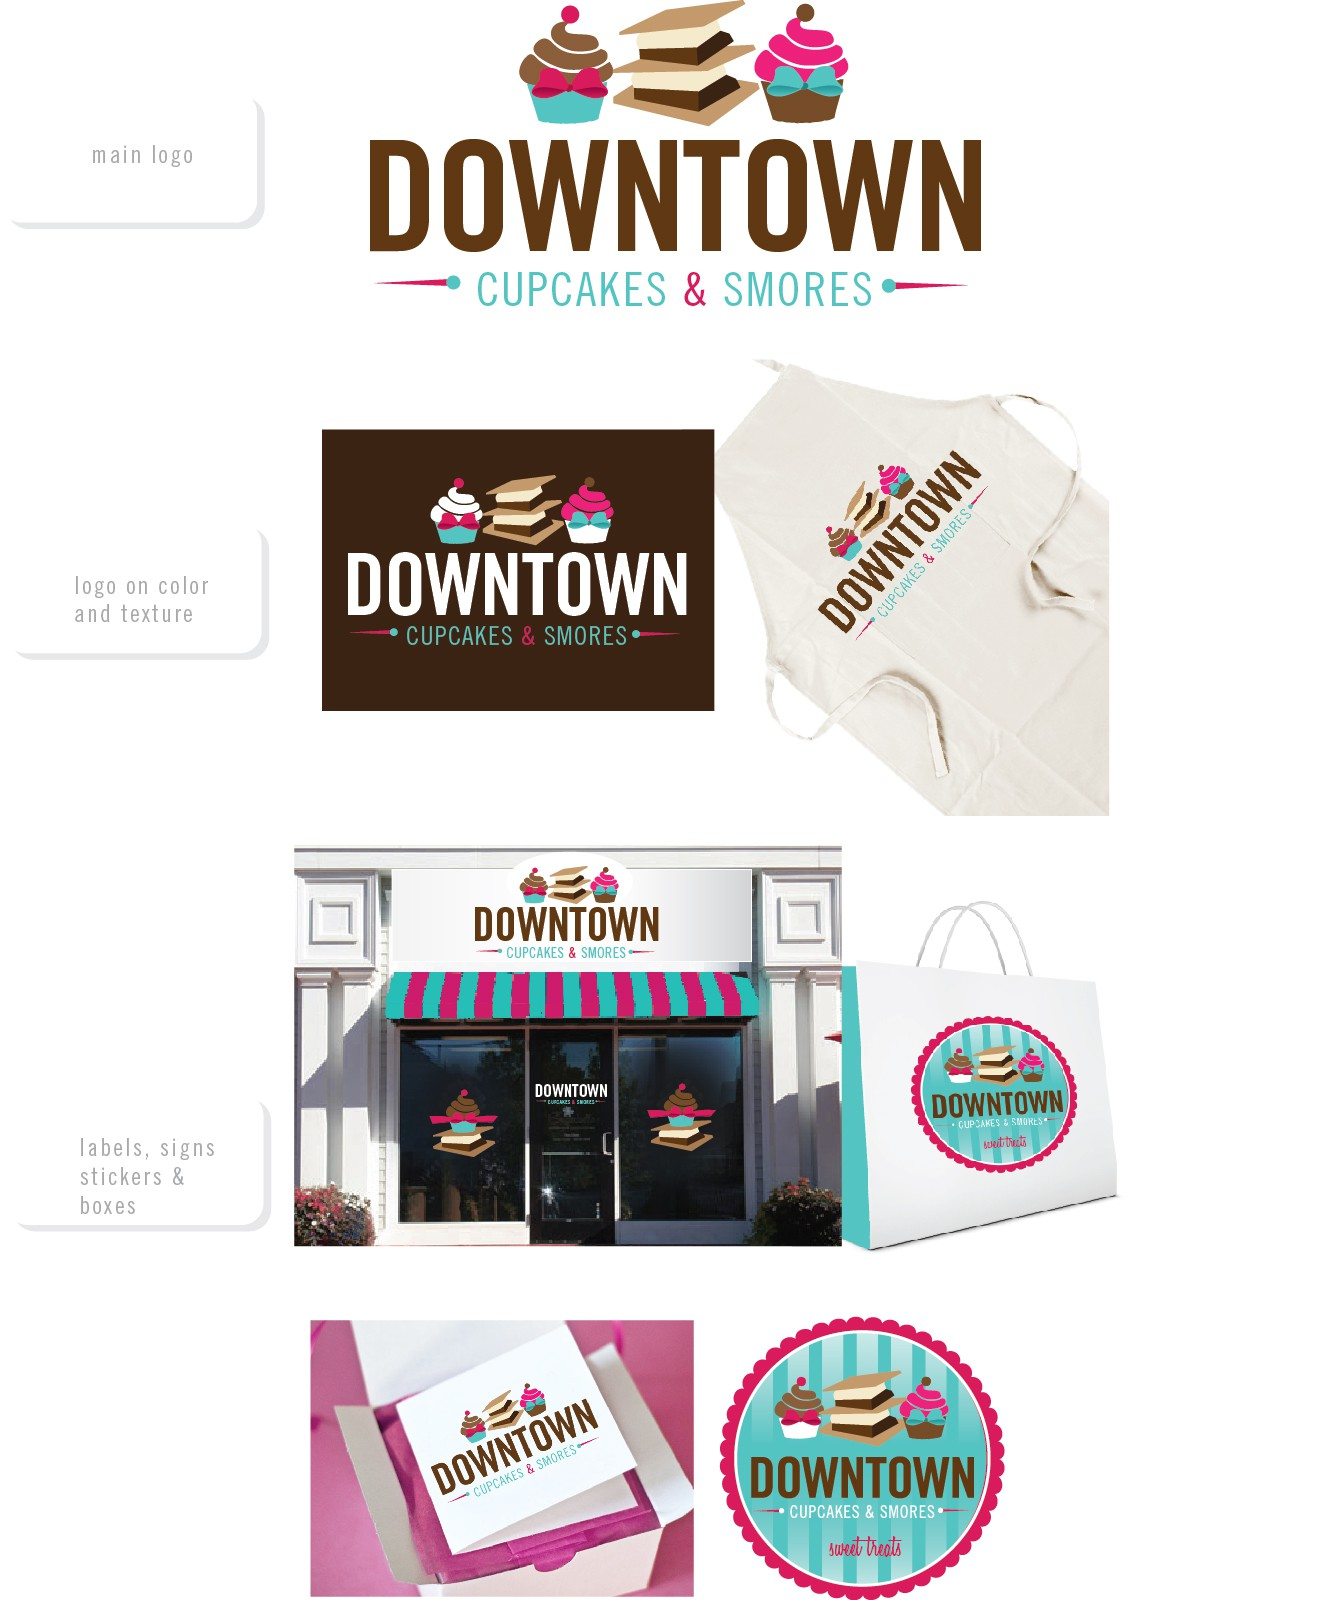 Create the next logo for downtown CUPCAKES & SMORES